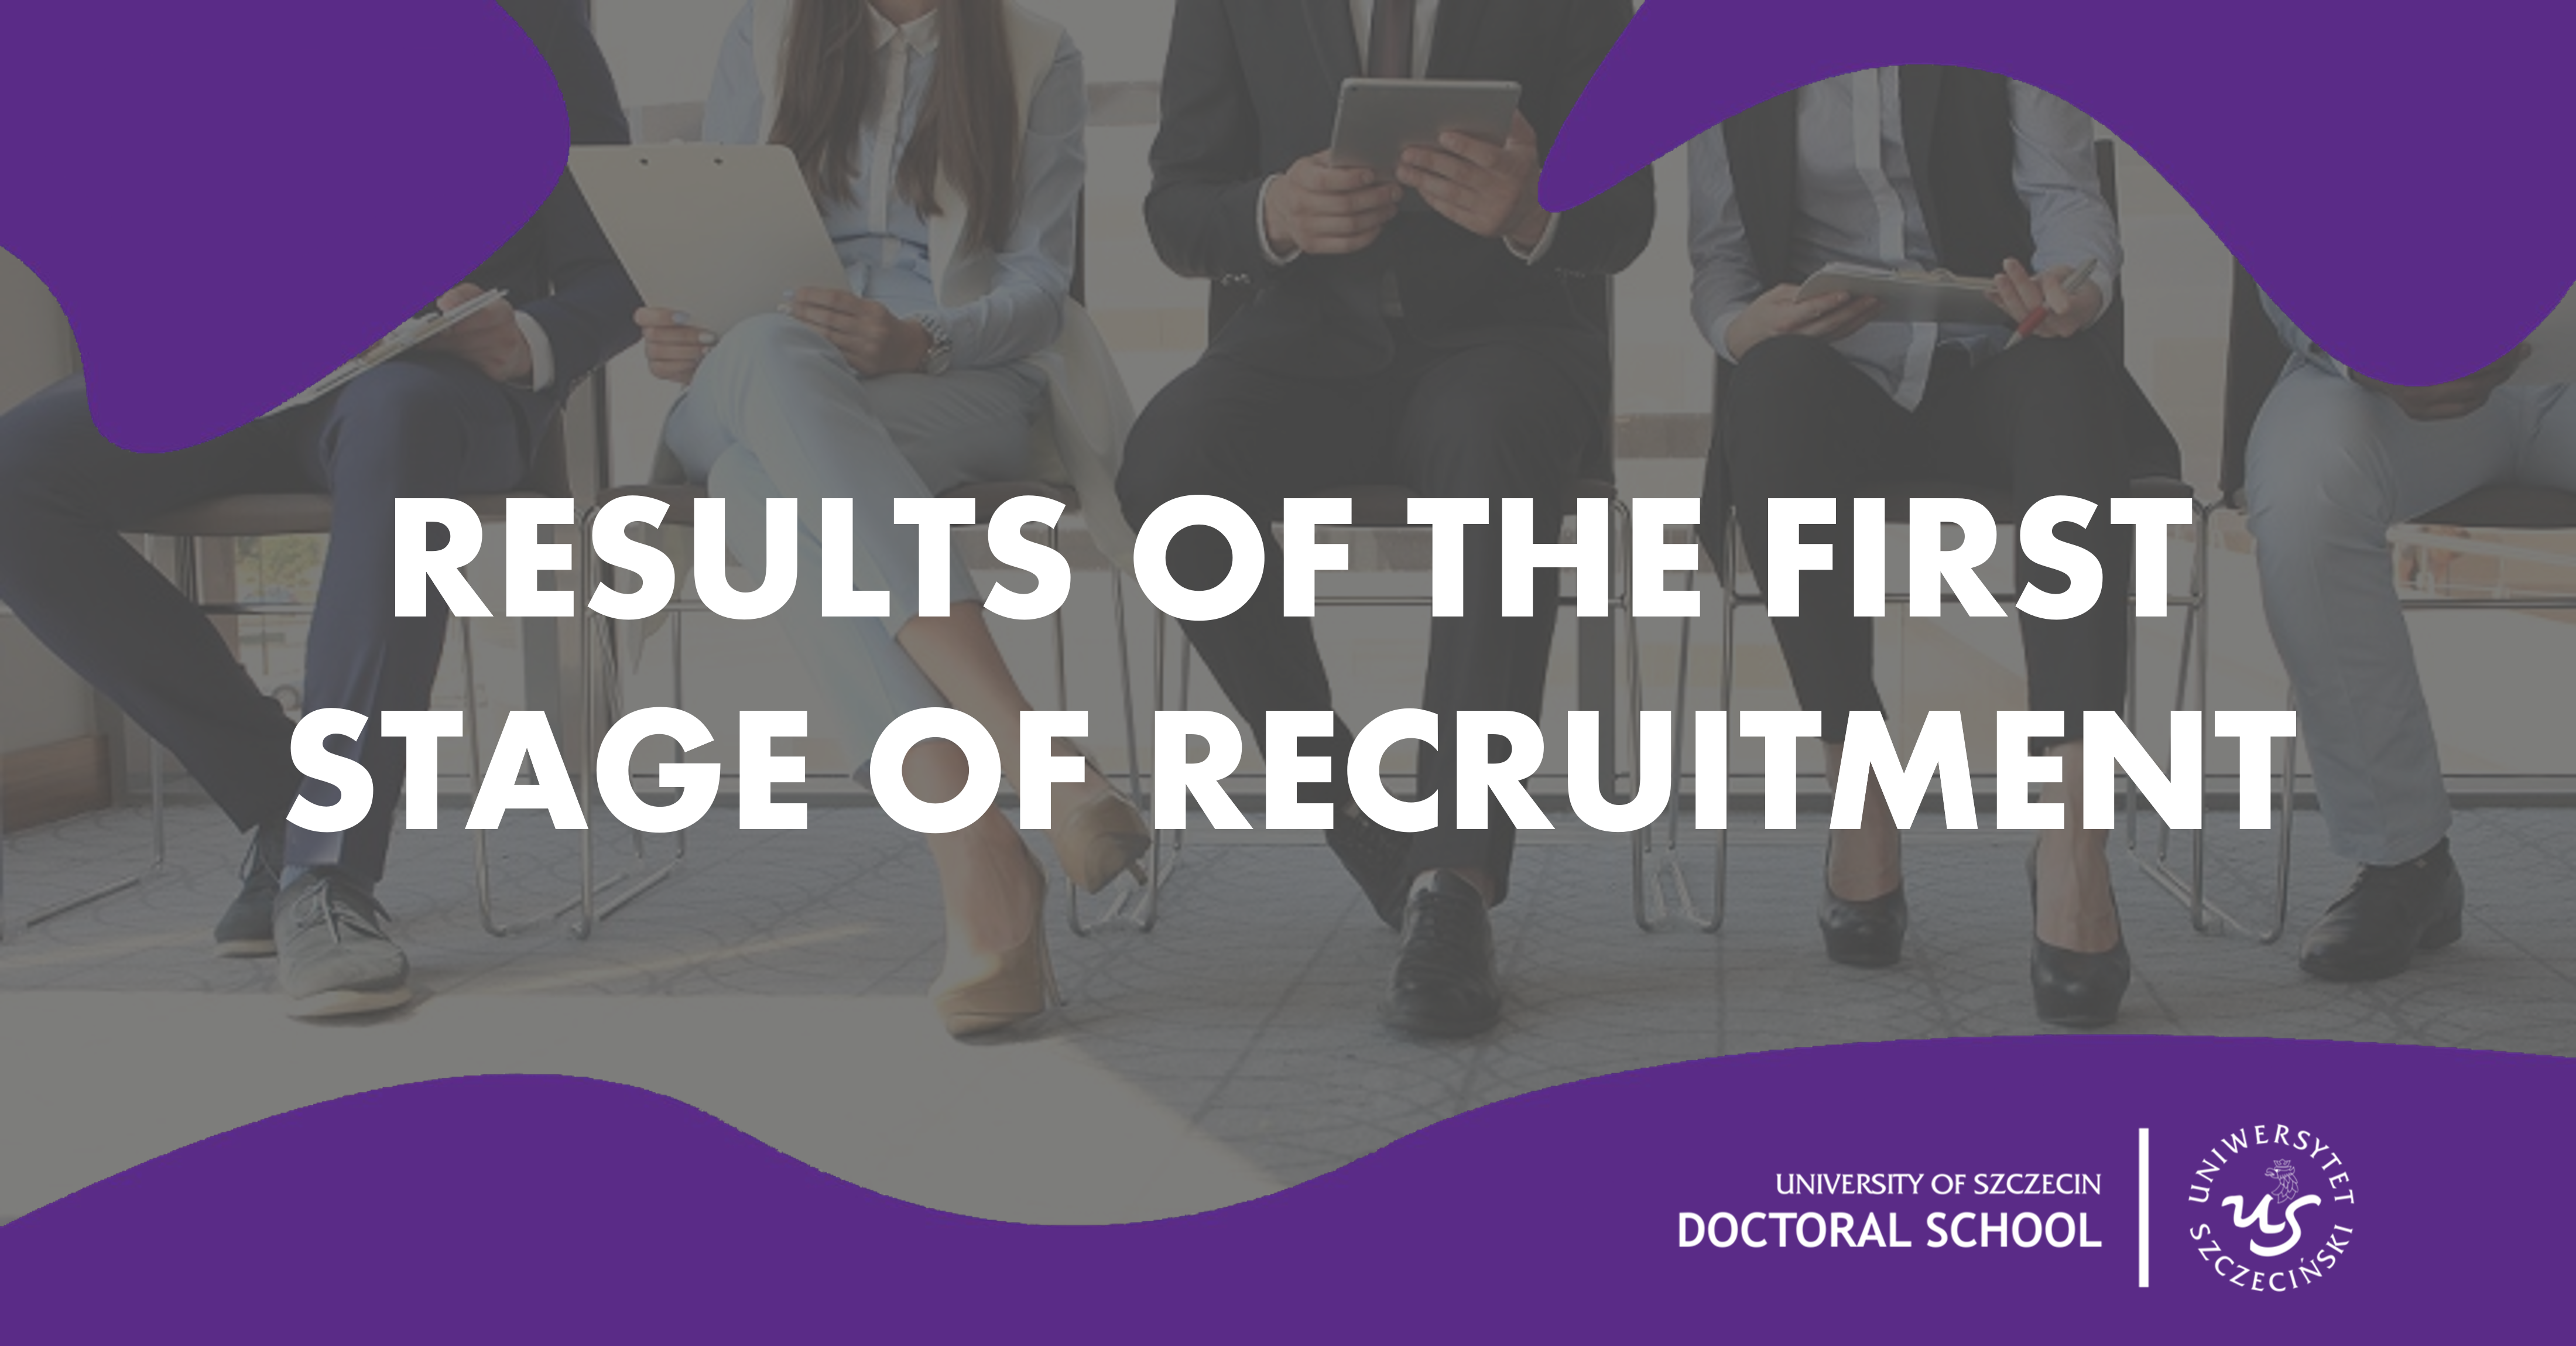 Results of the First Stage of Recruitment to the Doctoral School of the University of Szczecin